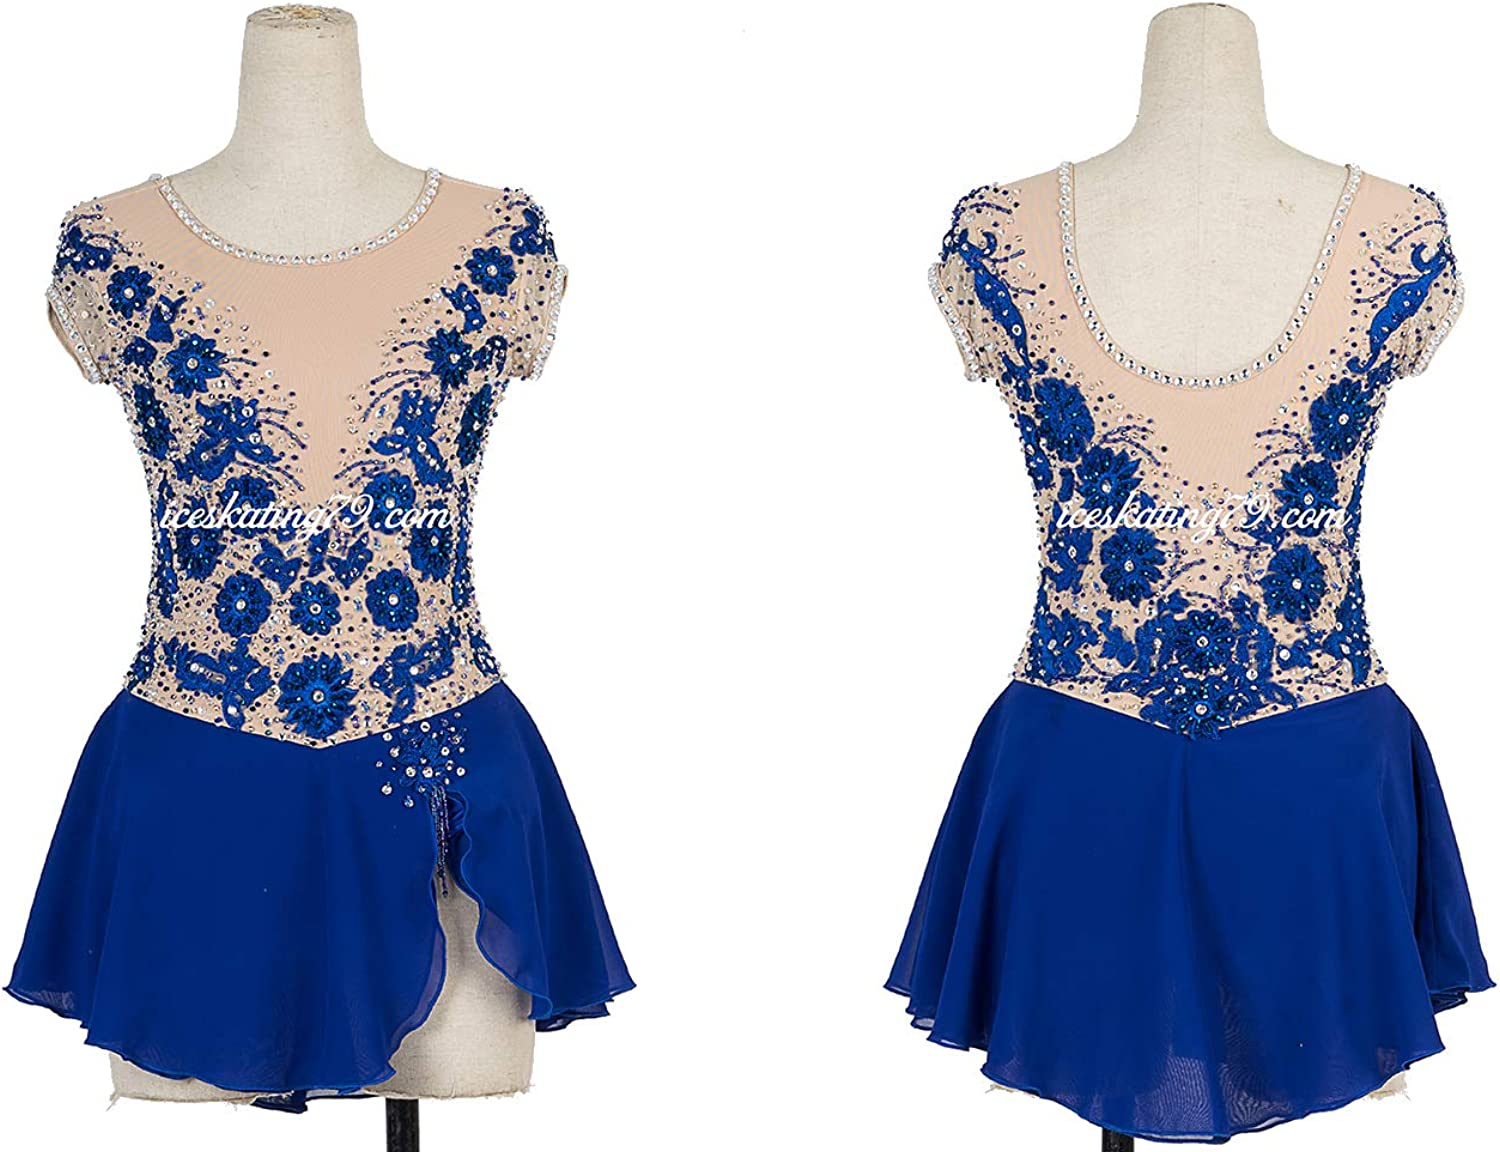 New Ice Figure Skating Dress Baton Twirling Dress For Competition Costume